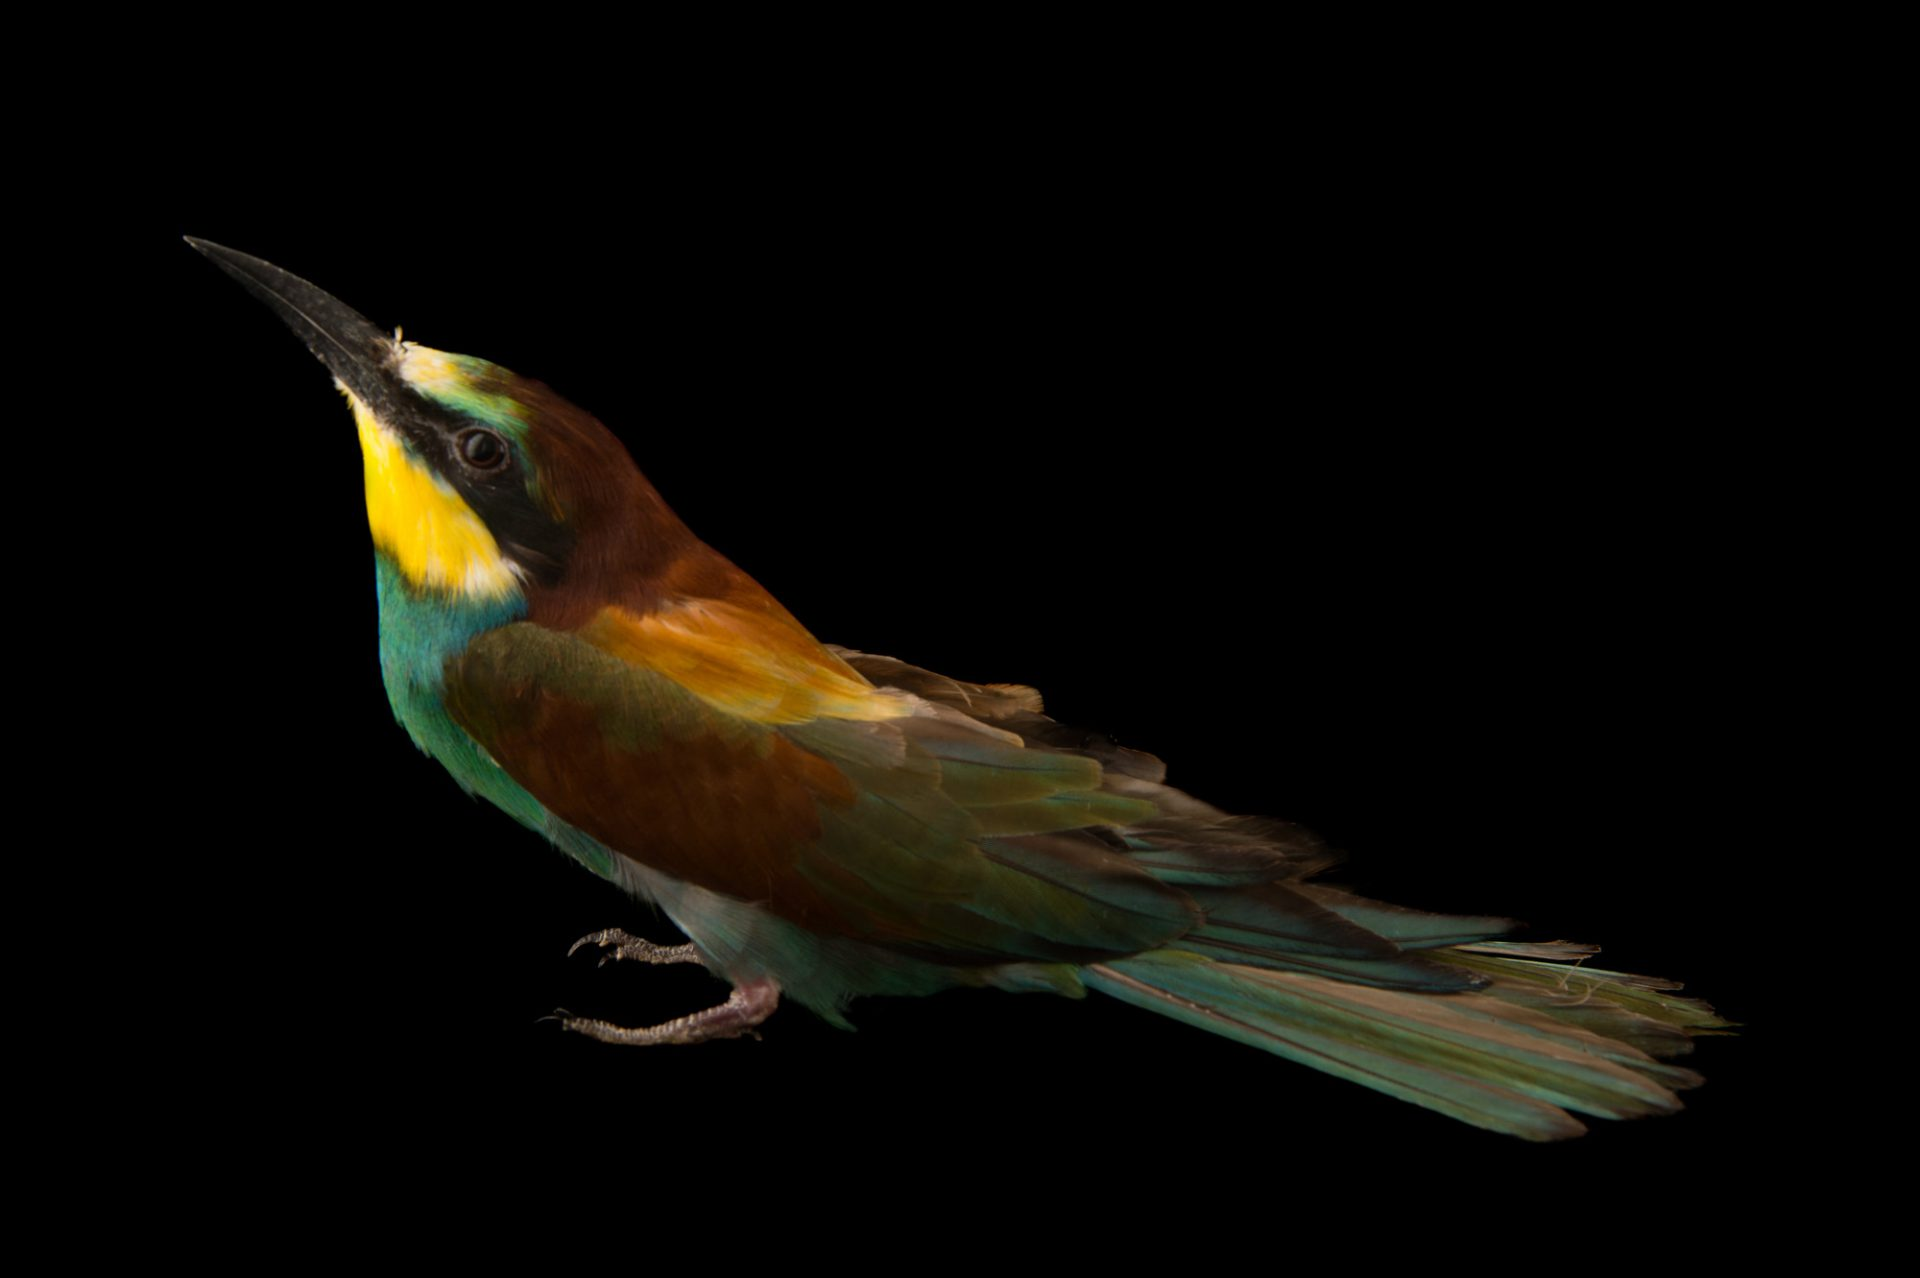 Photo: European bee-eater (Merops apiaster) from the Budapest Zoo.